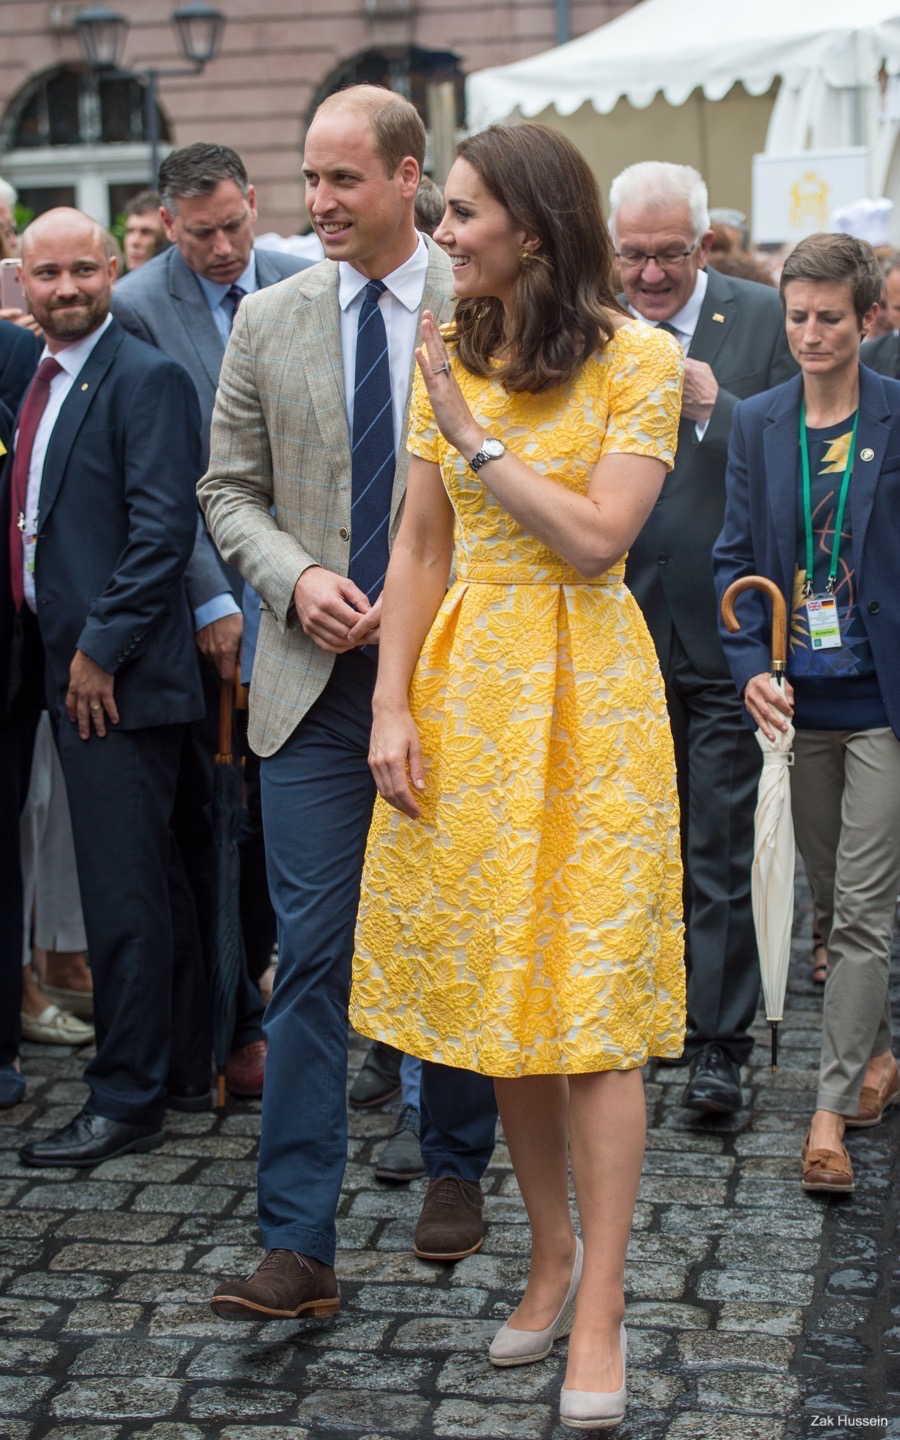 Kate Middleton at the street market in Heidelberg, Germany